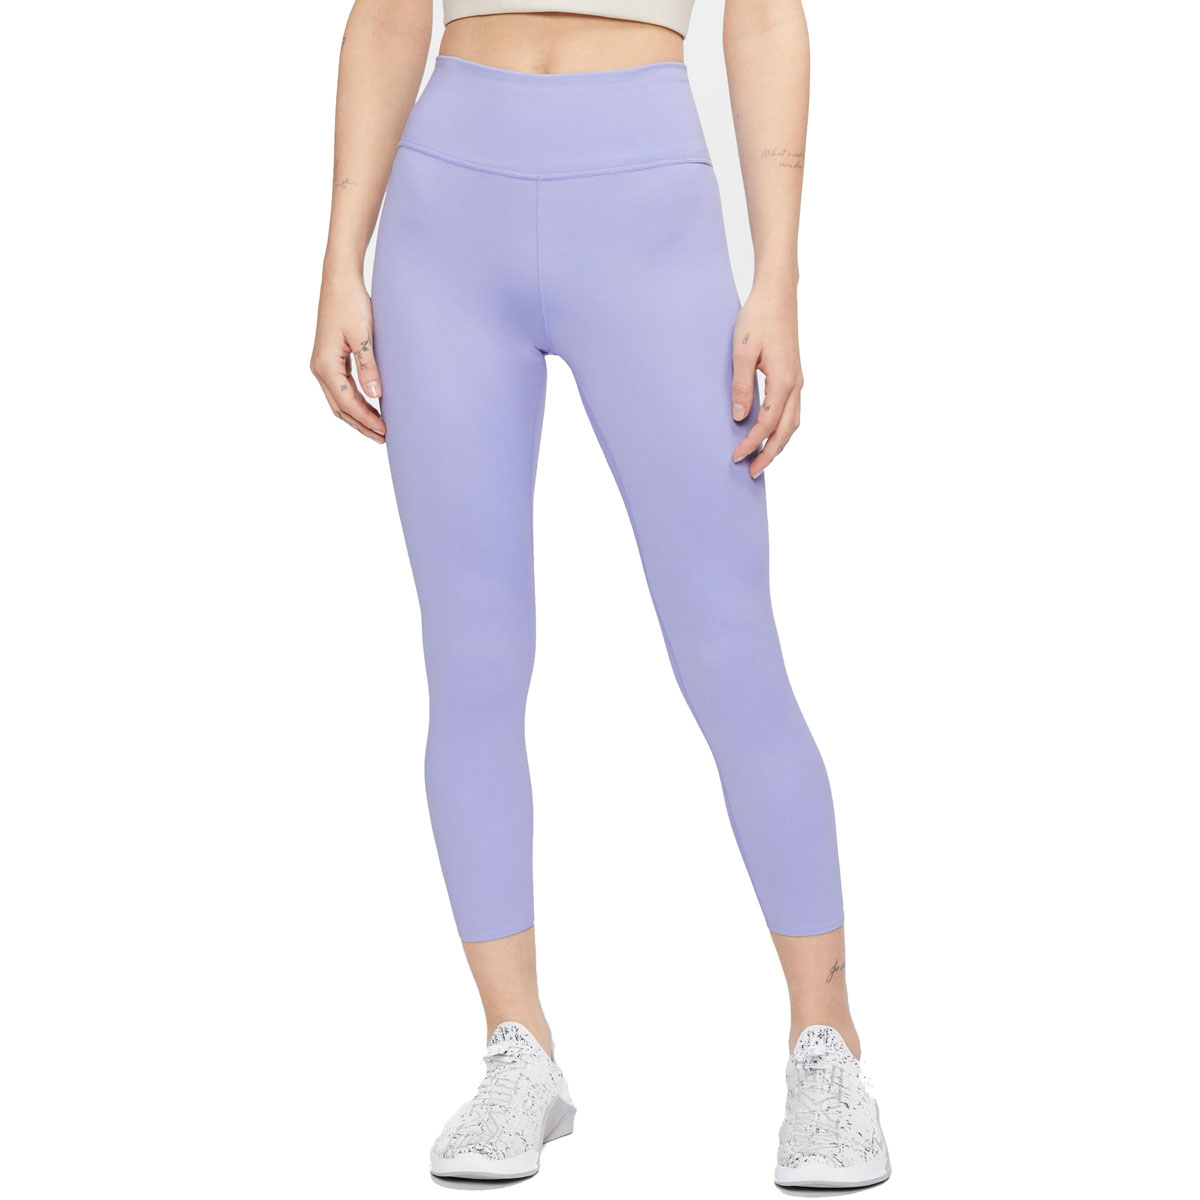 Women's Nike One Luxe Cropped Tights - Color: Light Thistle/Clear - Size: XS, Light Thistle/Clear, large, image 1